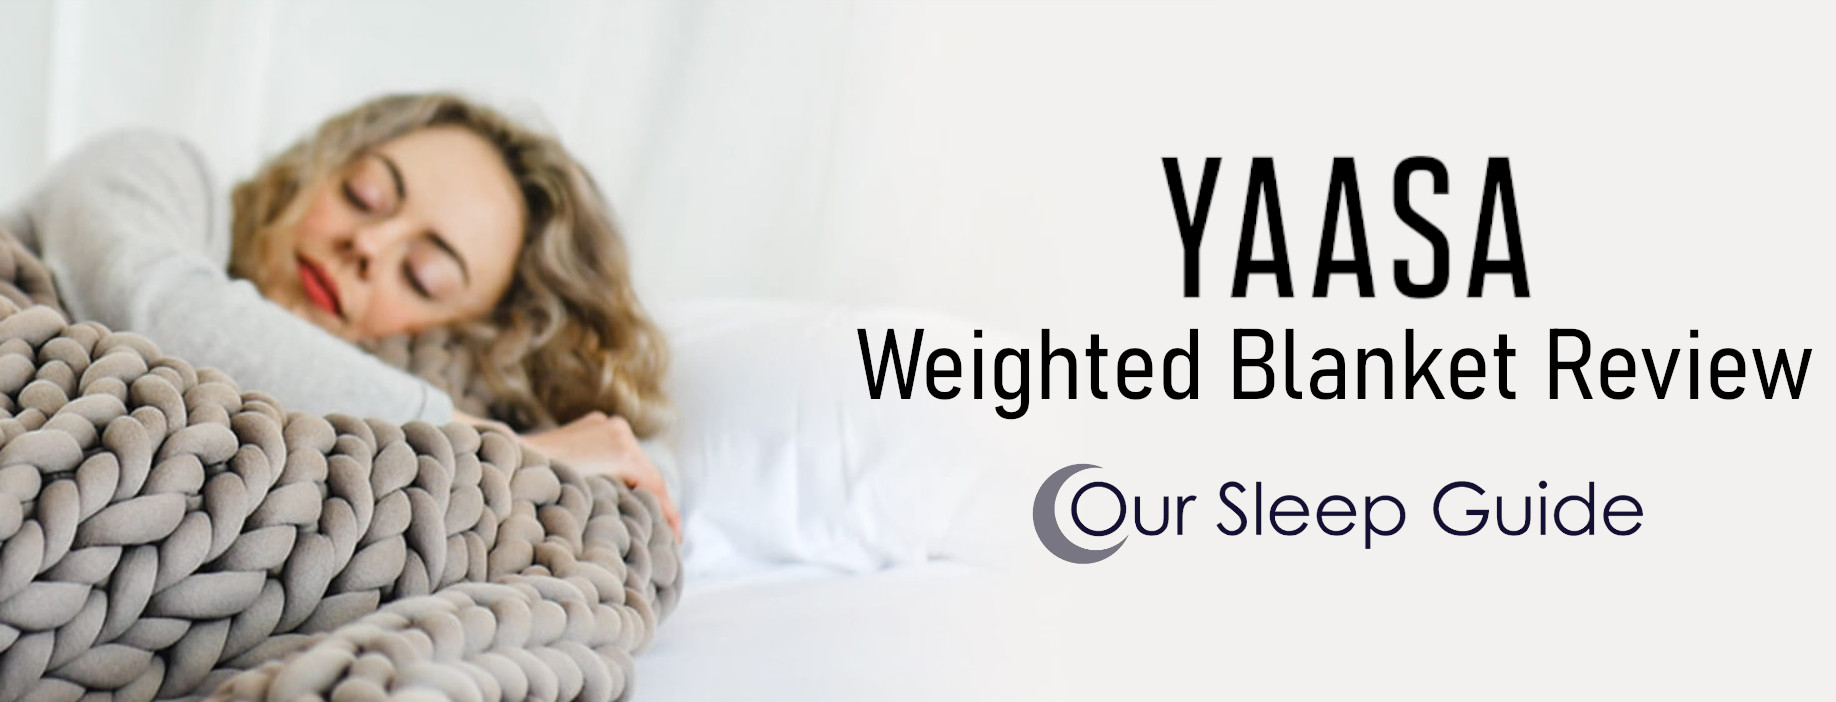 yaasa weighted blanket review